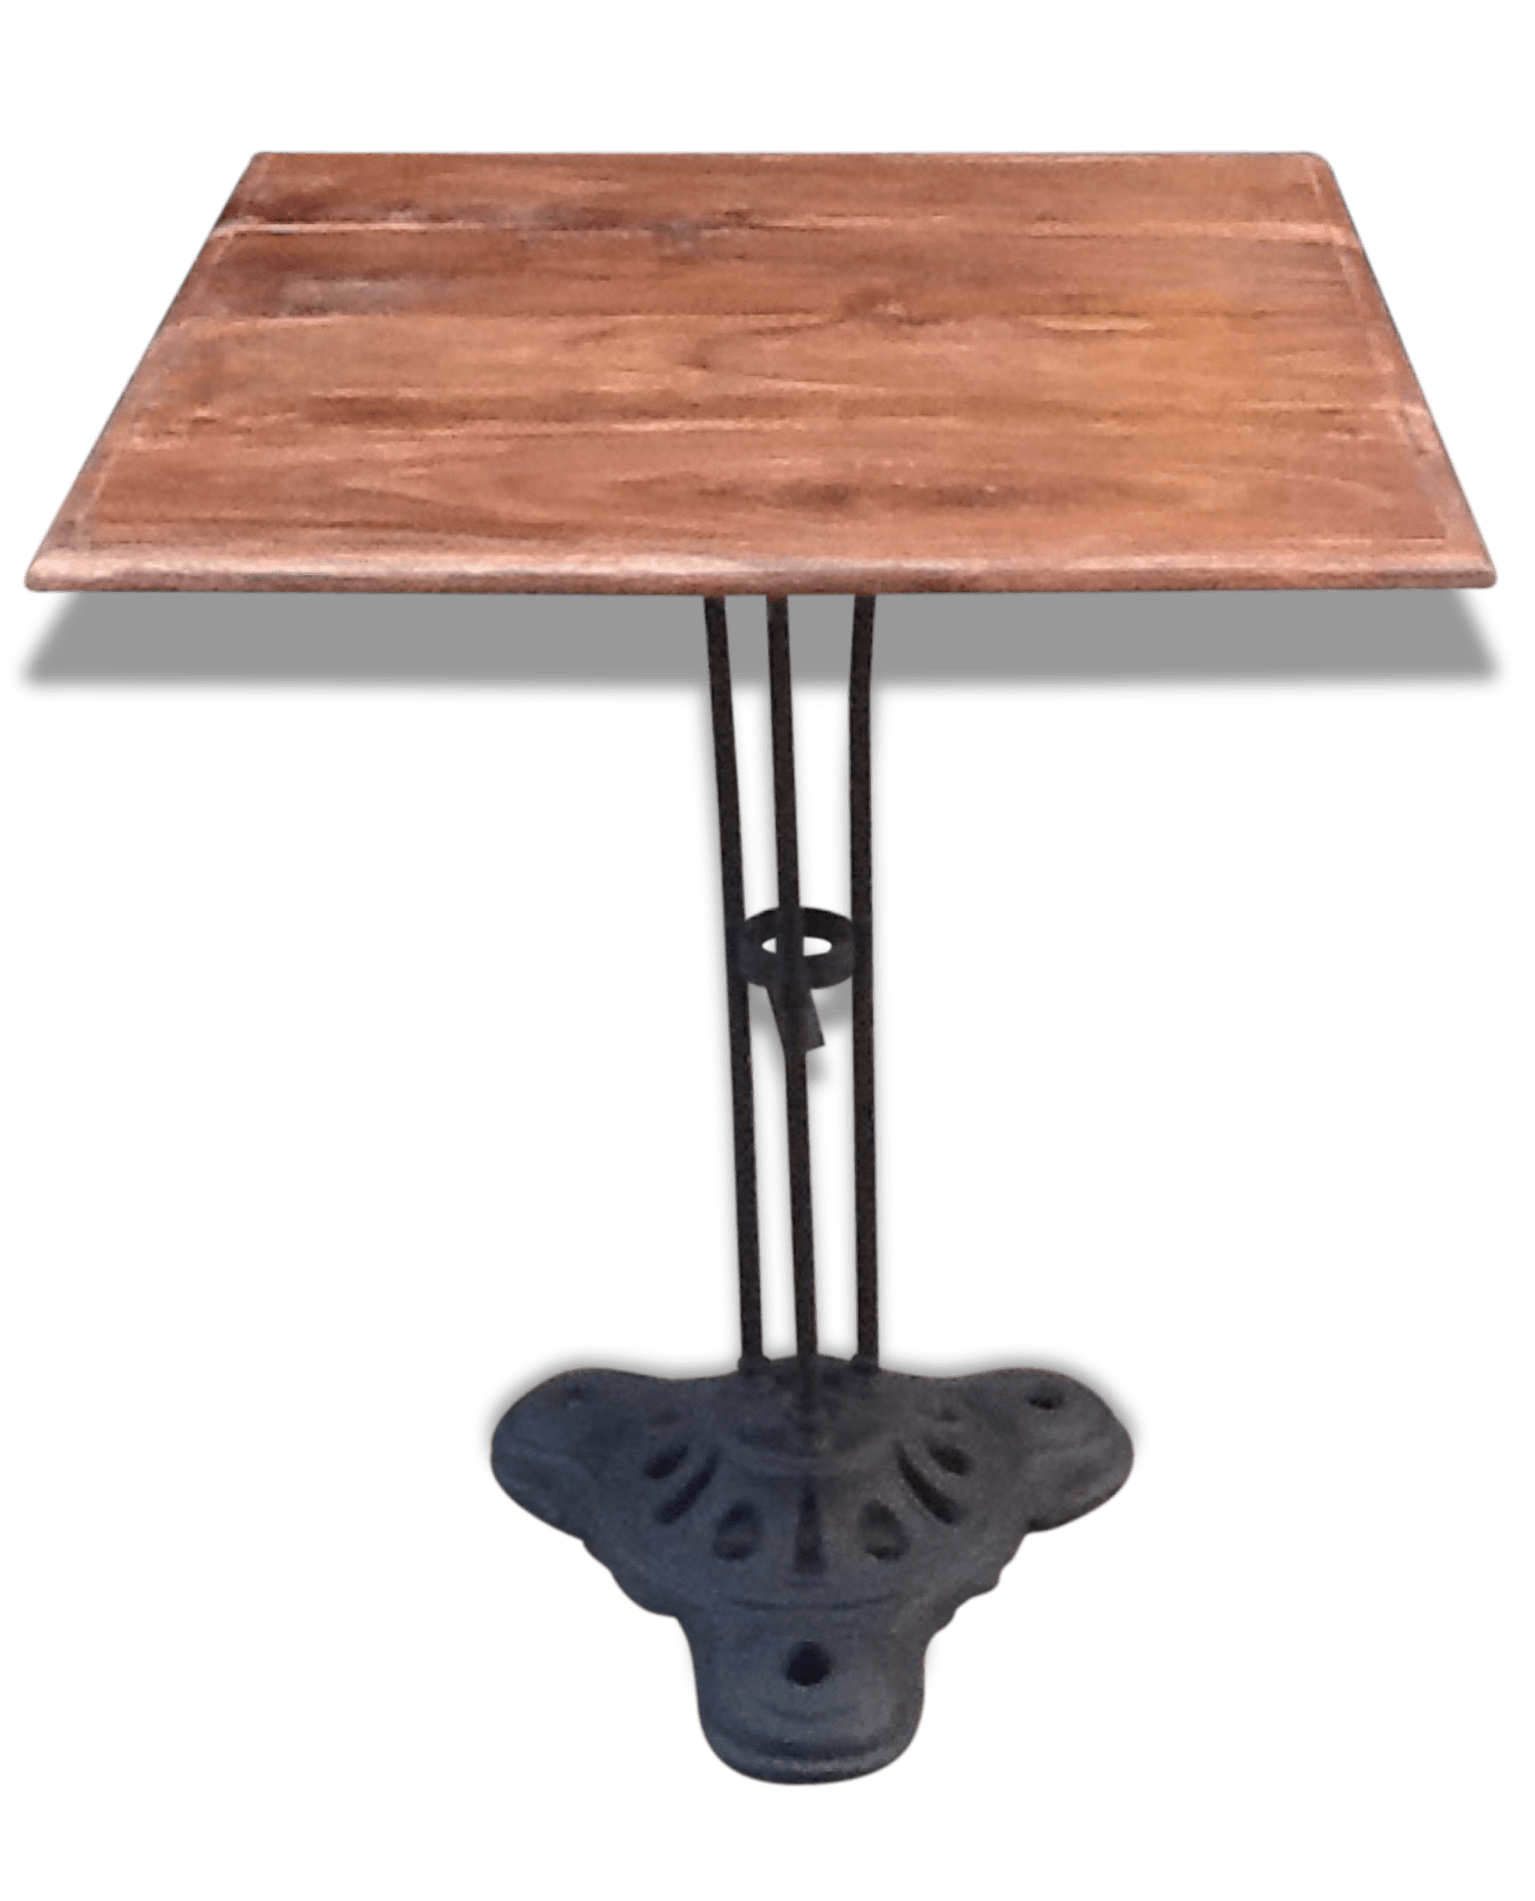 Table Bistrot Pied Fonte Pied De Table Bistrot Perfect Table Int Pied Fonte